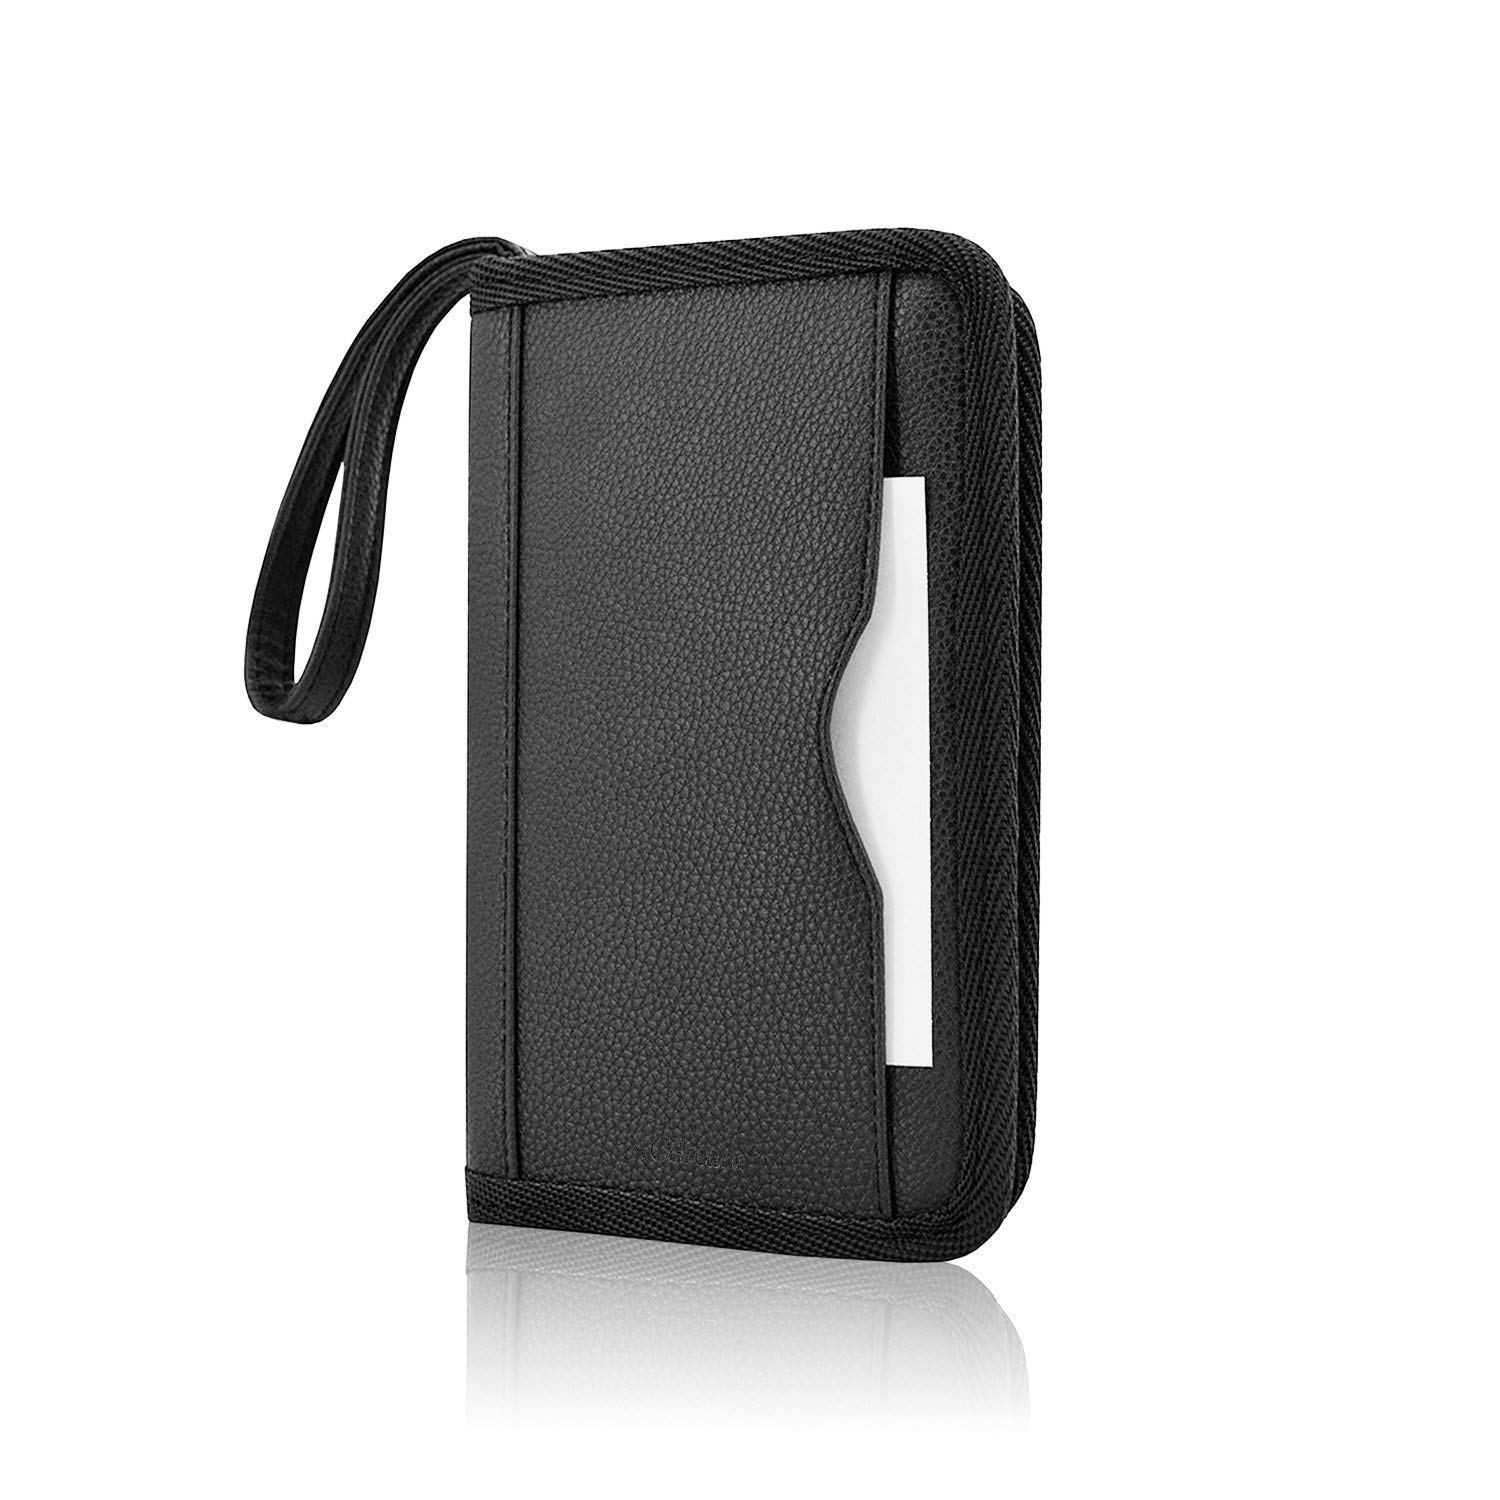 MIFAVOR Leather Bags for New Nintendo 3DS XL Carrying Case Protective PU for New 3DS XL (Black)